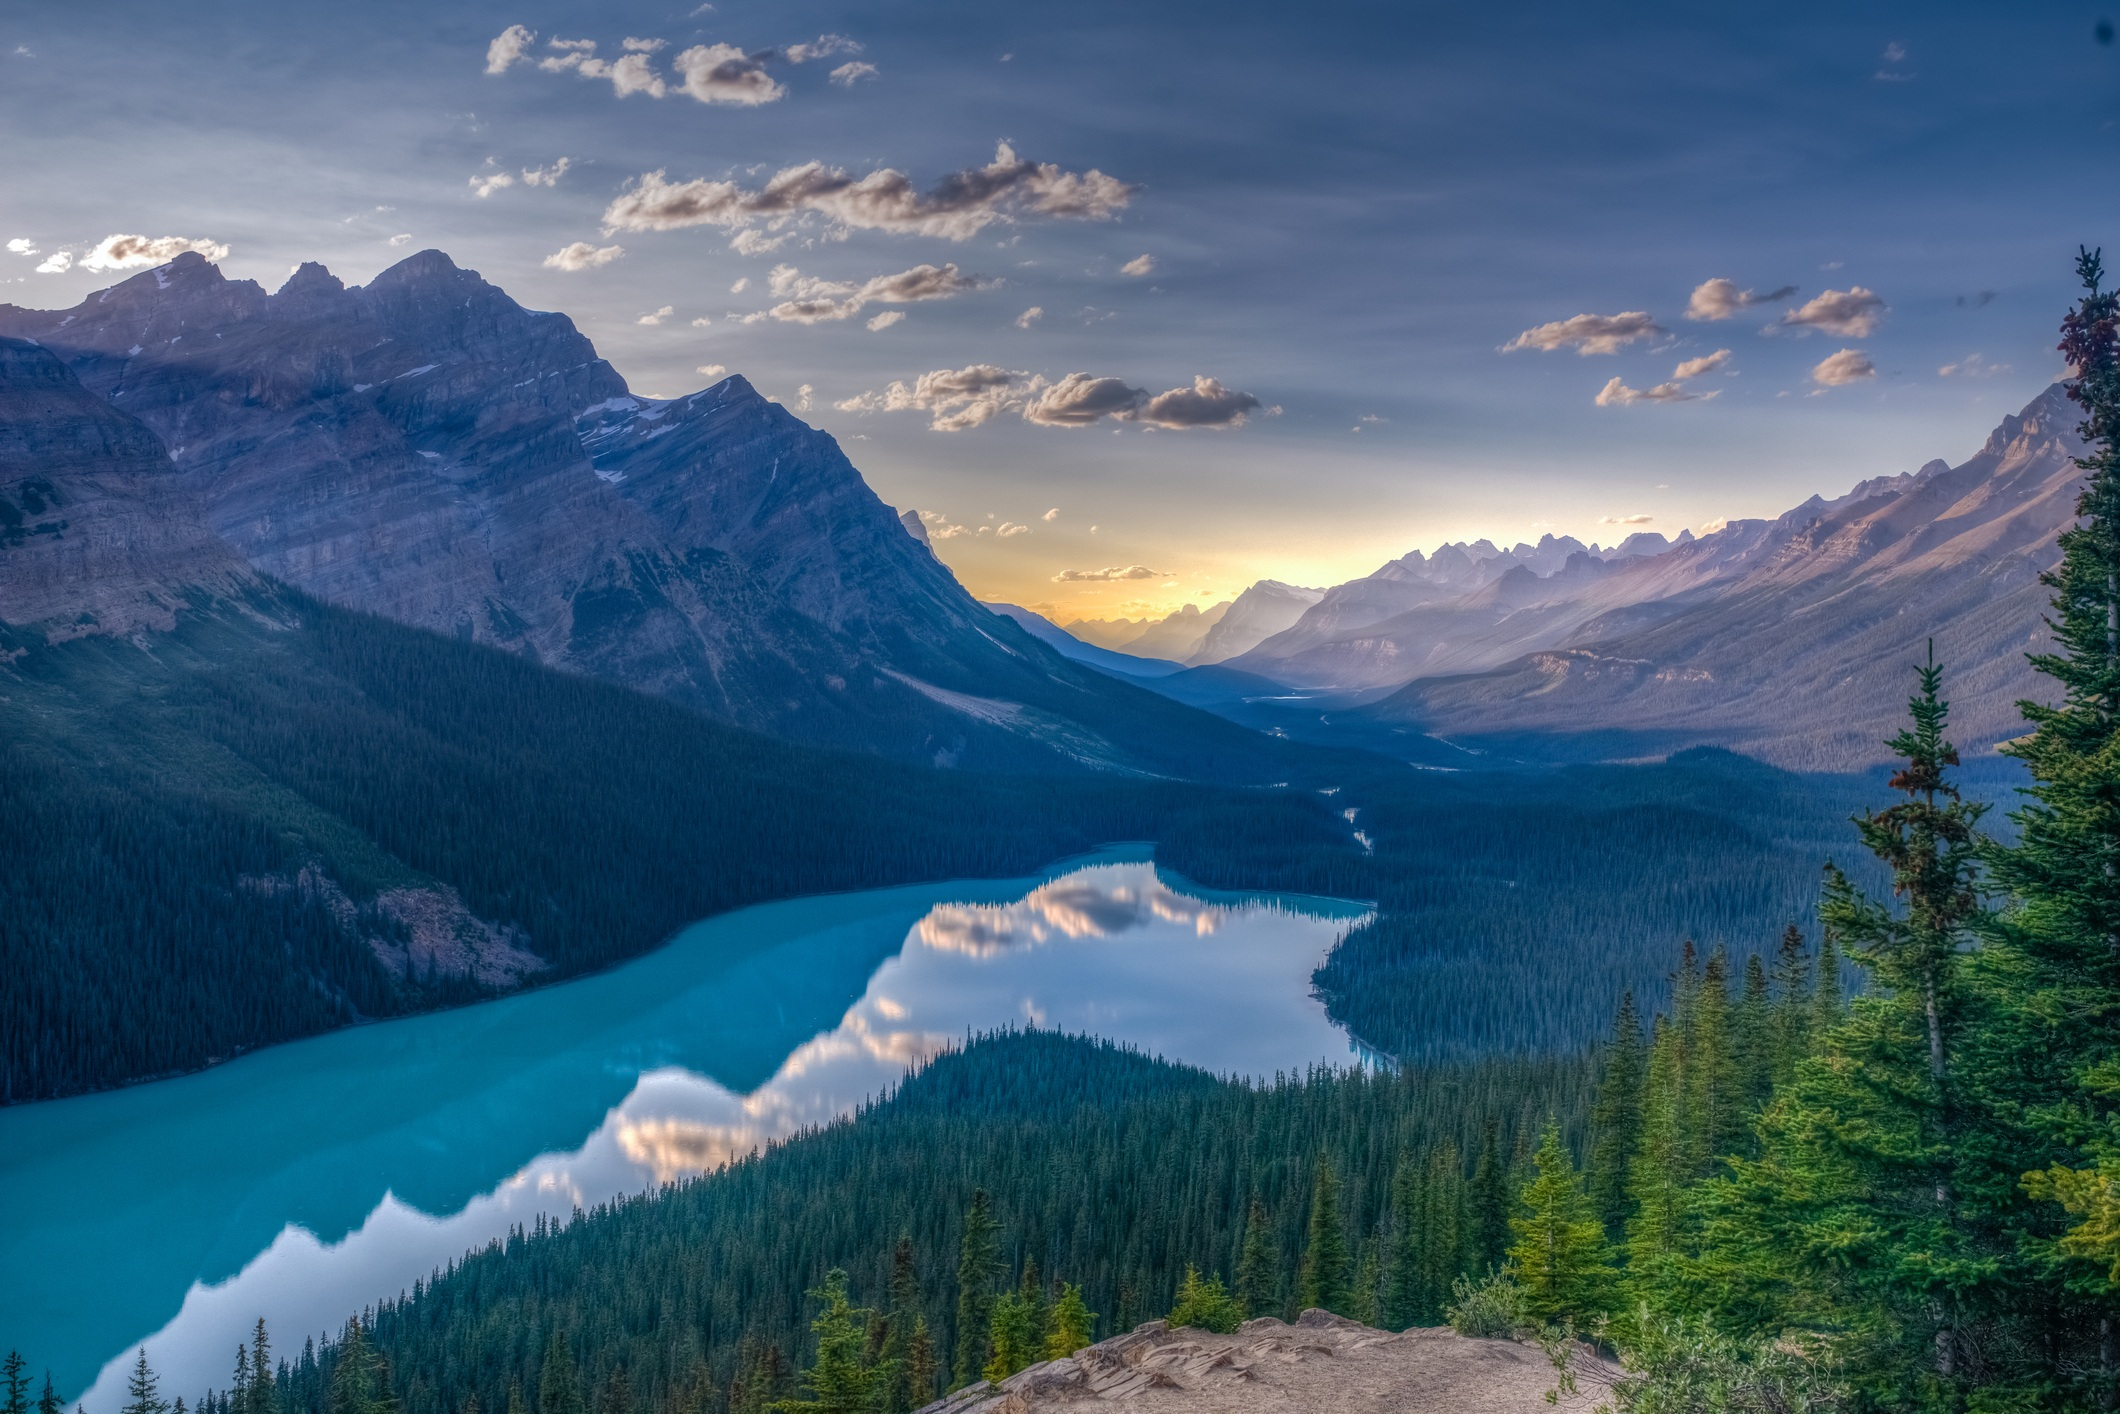 View of Peyto Lake, Jasper National Park, Canadian Rockies